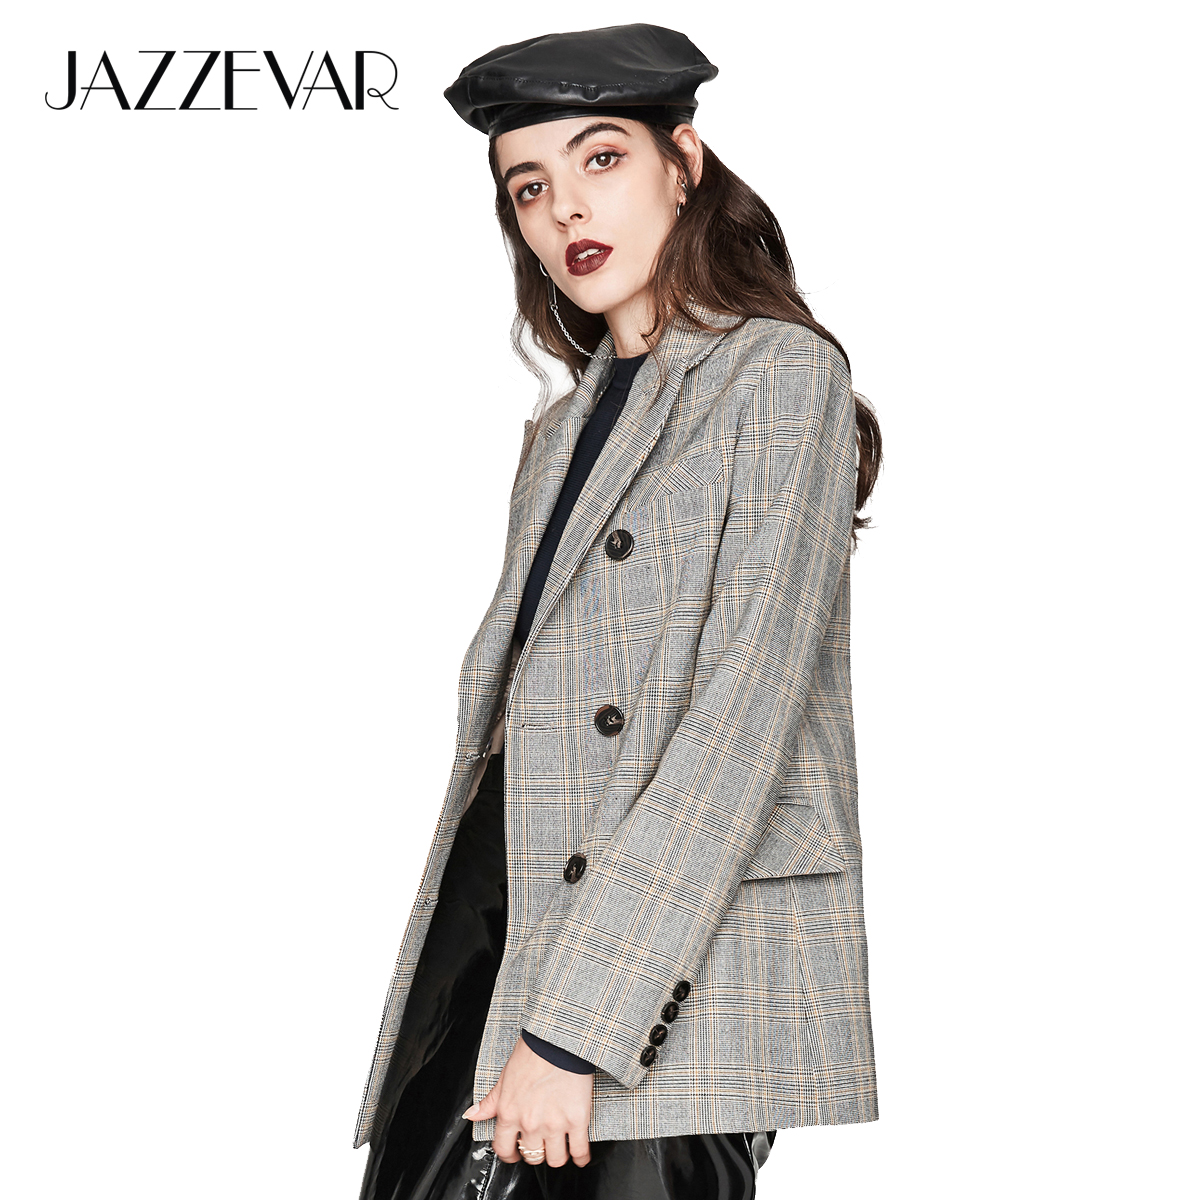 JAZZEVAR 2019 New Autumn Fashion Women s Vintage plaid Double Breasted Jacket Short Suit Outerwear High